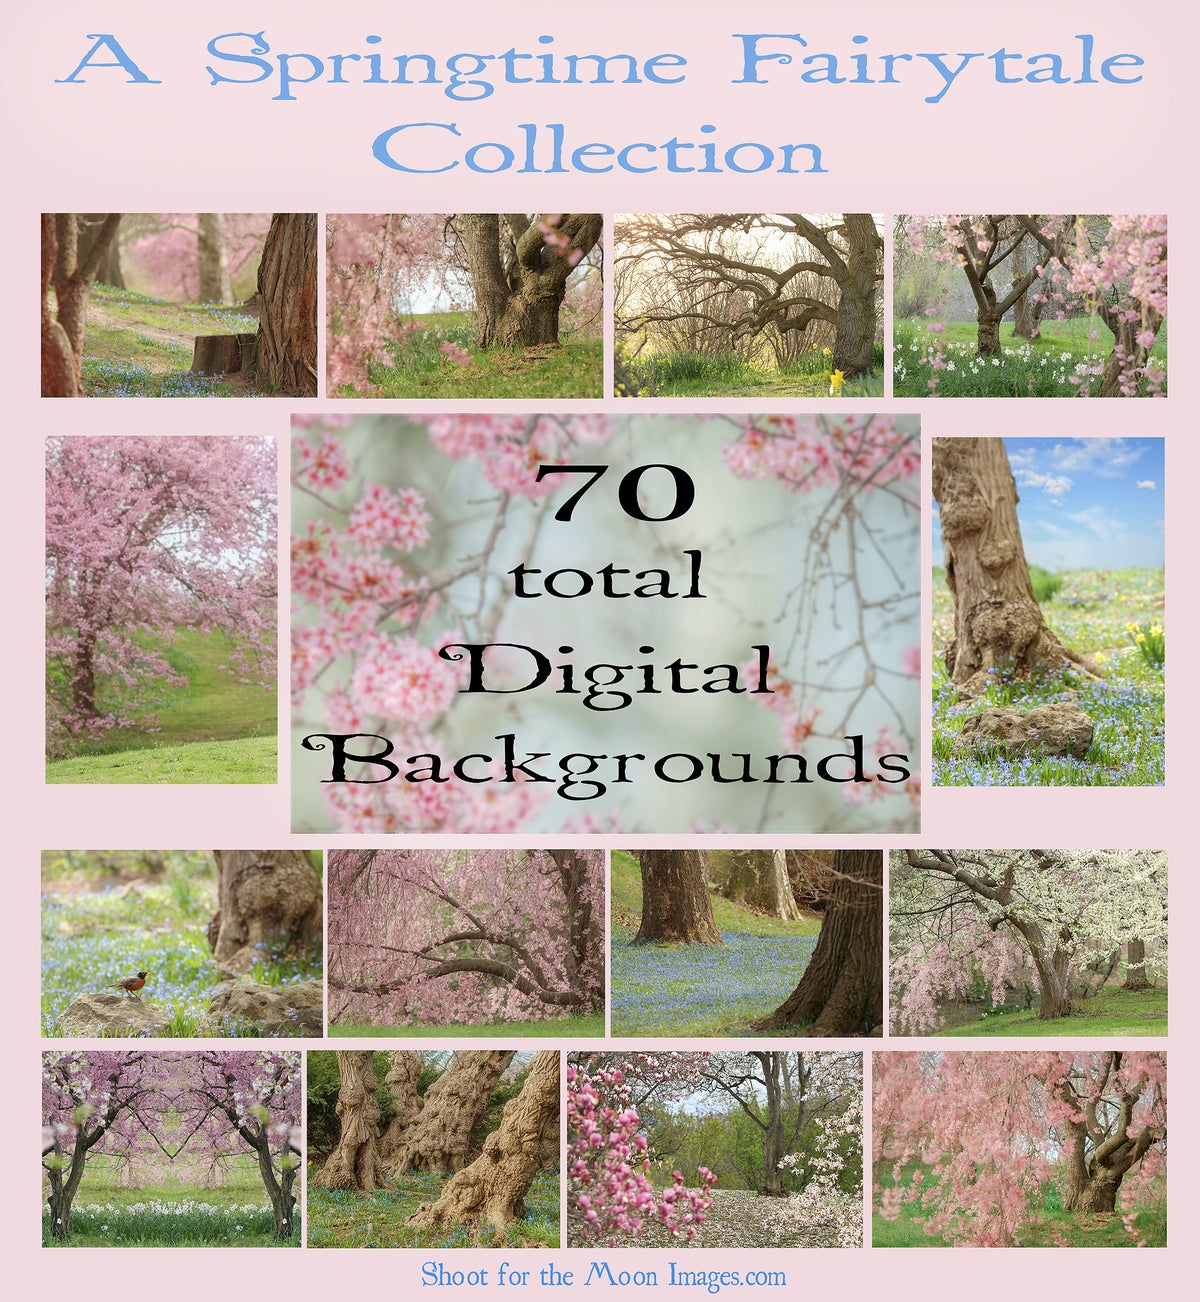 Image of A Springtime Fairytale Digital Background Collection